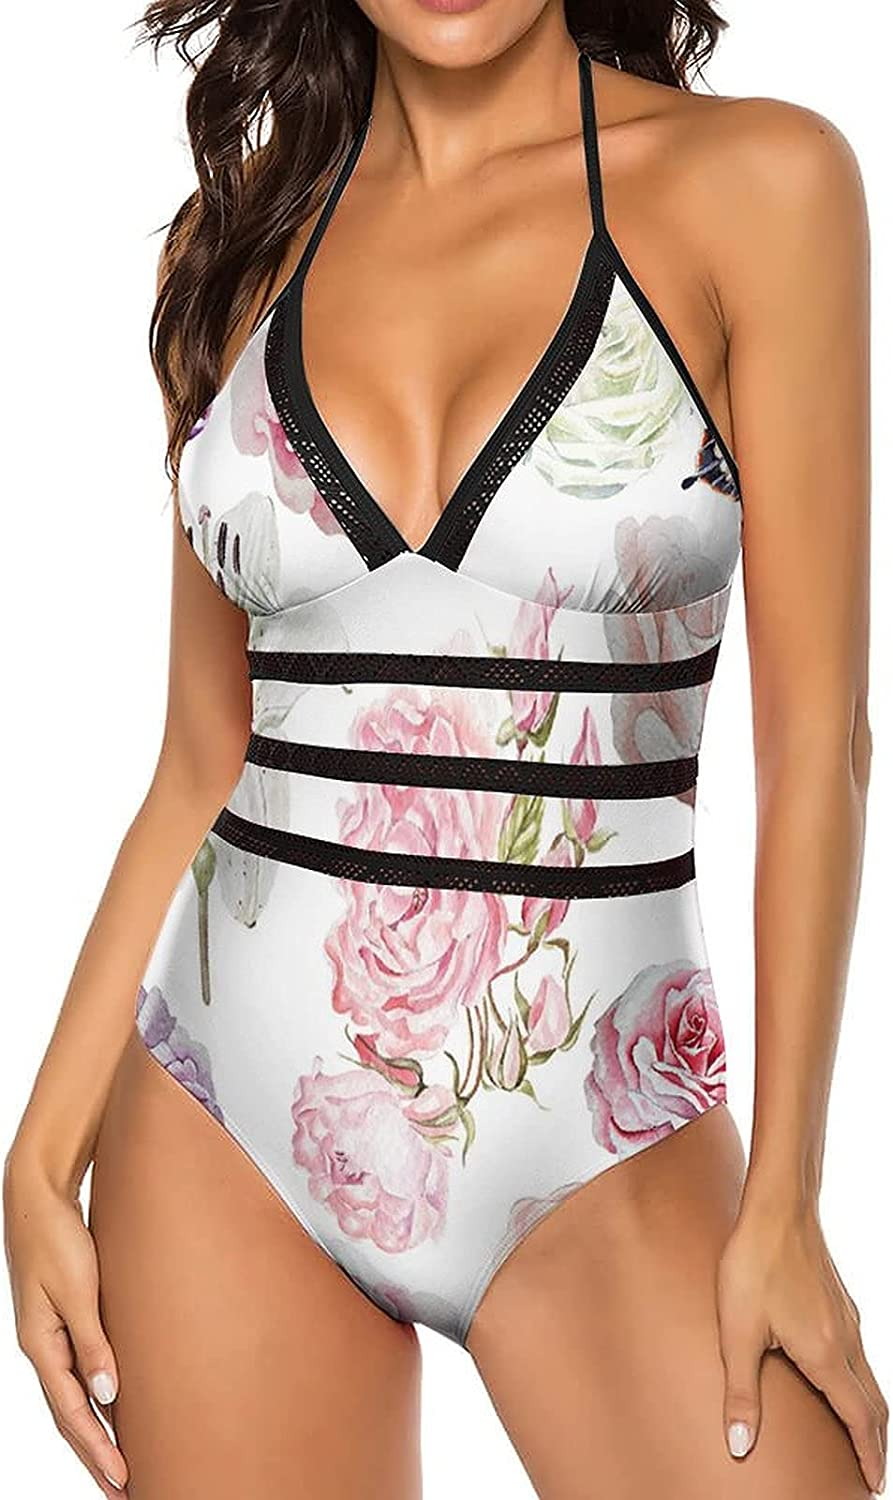 AngelSept Women's One Piece Swimsuit V Neck Seamless Tummy Control_405